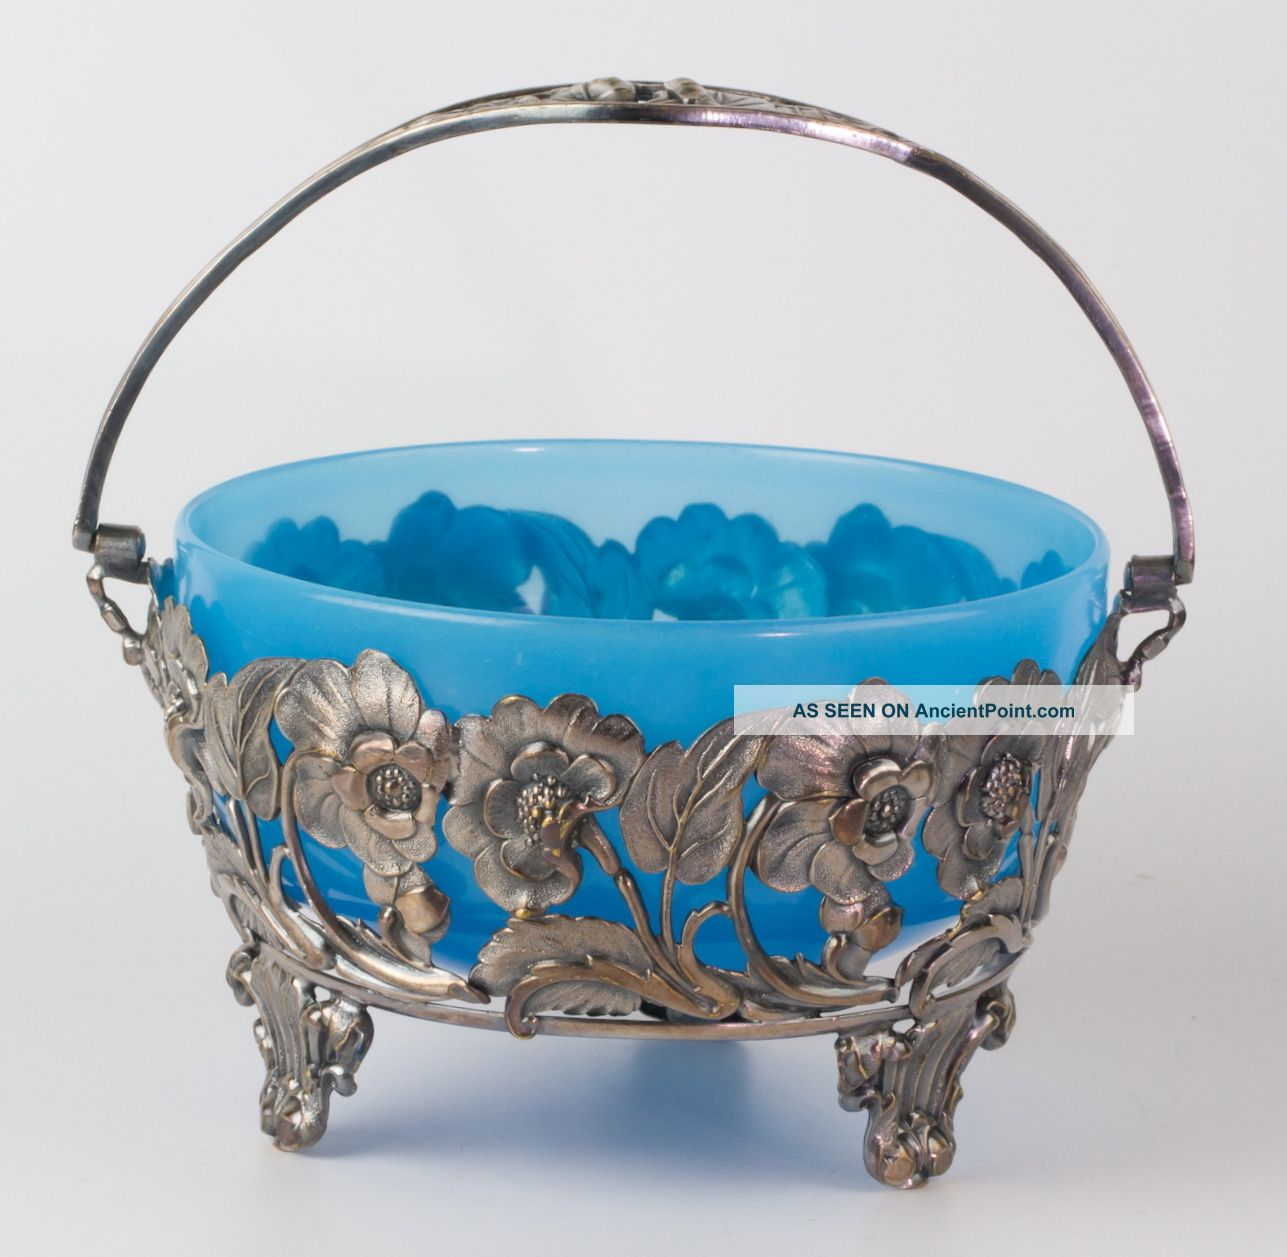 Antique Victorian Blue Turquoise Glass Bowl In Repousse Silver Frame Gorgeous Bowls photo